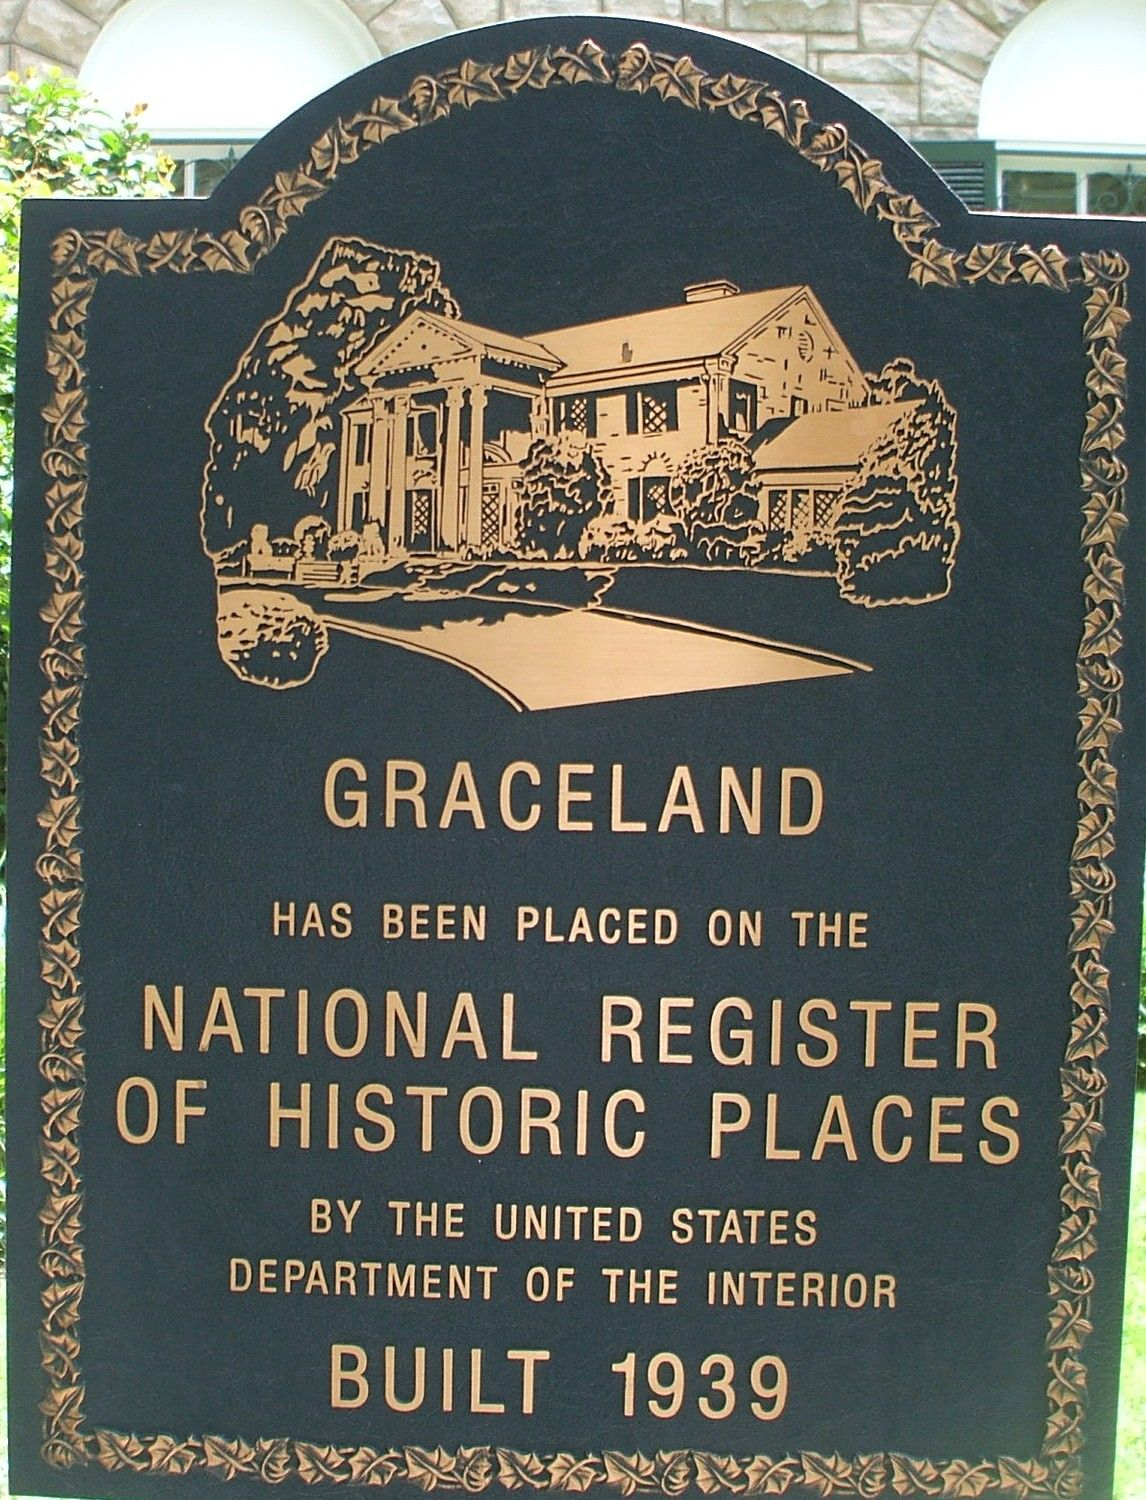 Graceland Has Been Placed On The National Register Of Historic Places By The United States